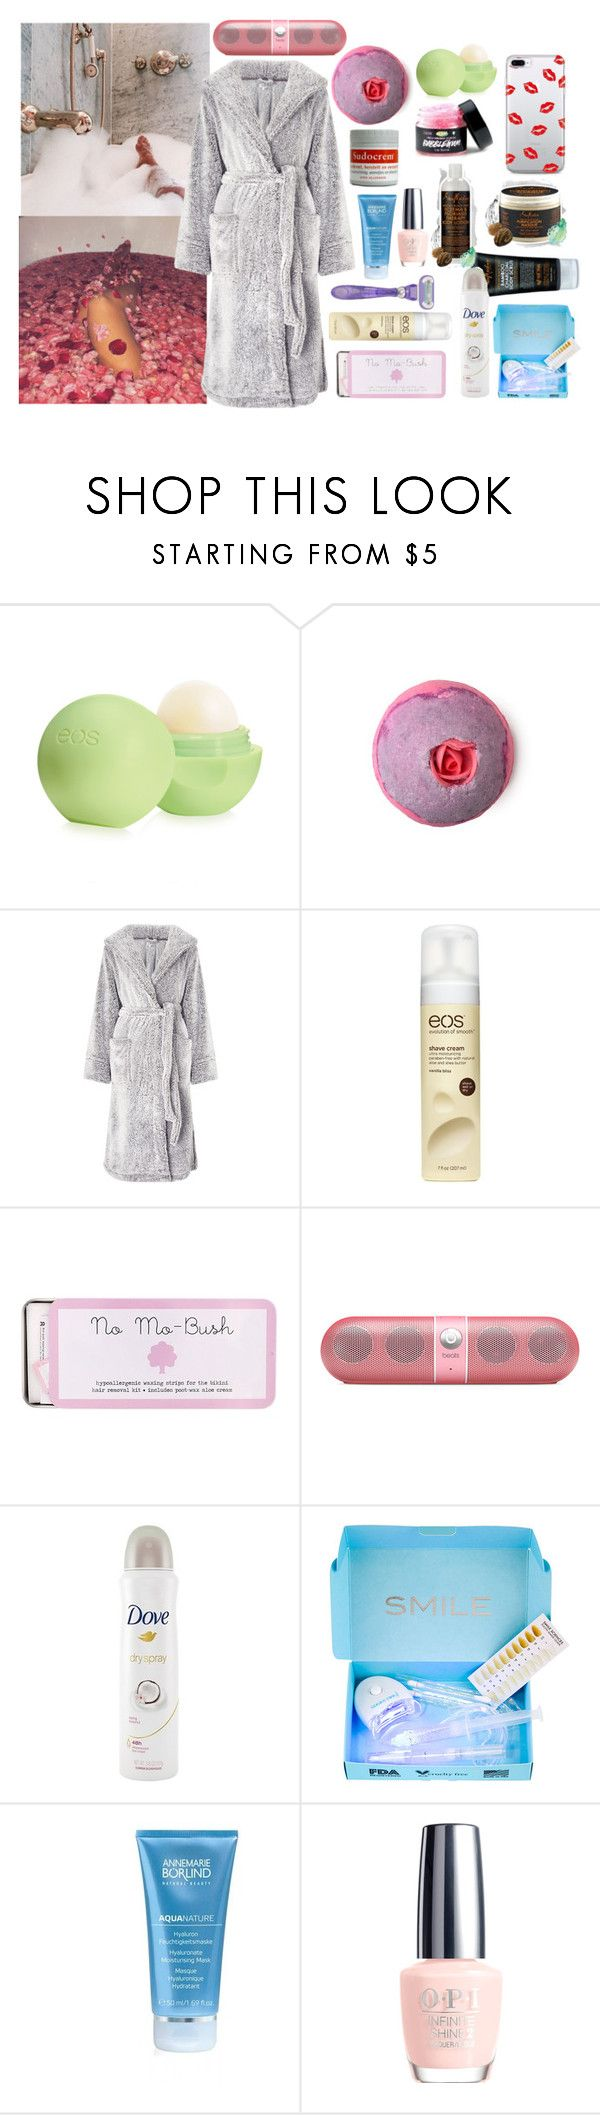 """""""Pamper day"""" by bibi-martens on Polyvore featuring mode, Eos, John Lewis, Therapy, No Mo, Beats by Dr. Dre, Smile Sciences, Annemarie Borlind en OPI"""